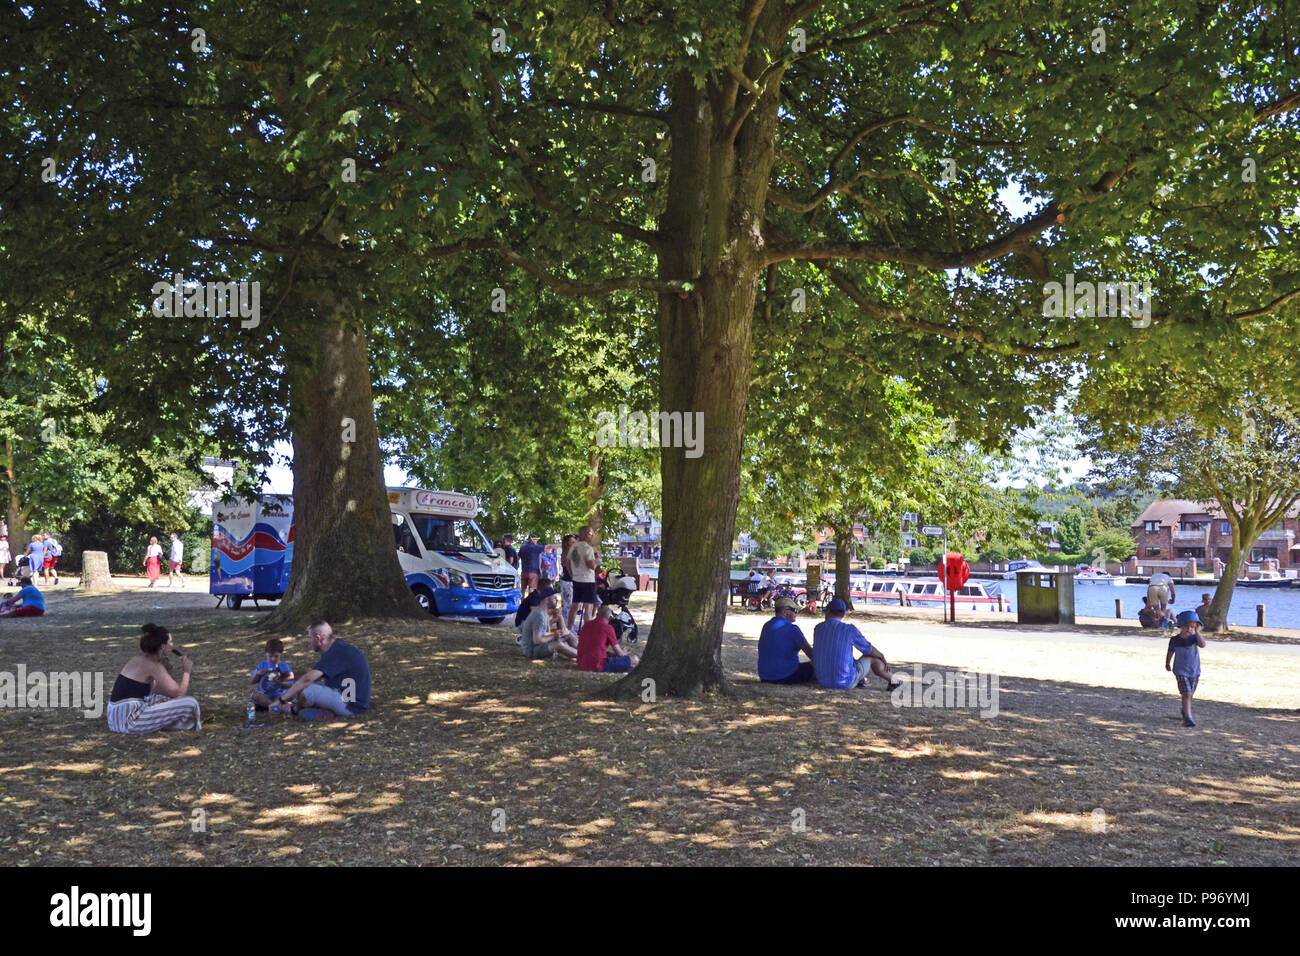 People sitting under a tree on a hot day beside the River Thames in Marlow, Buckinghamshire, England, UK - Stock Image